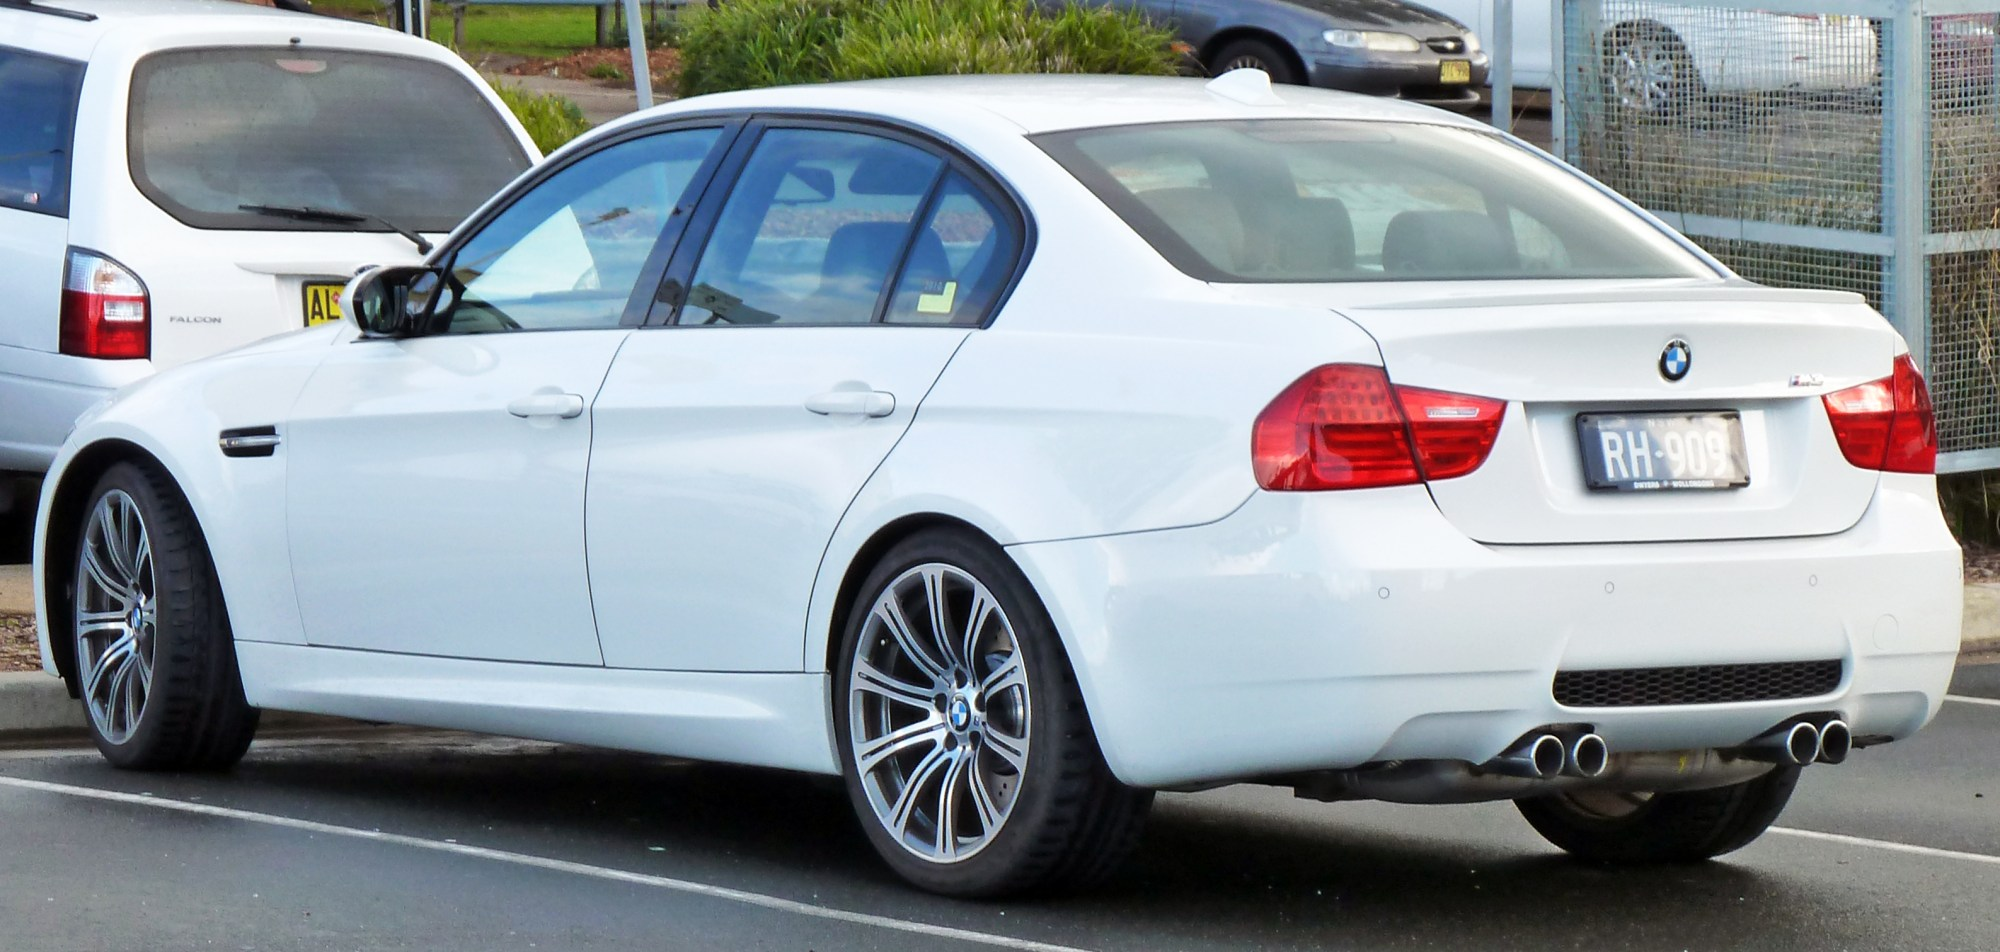 hight resolution of file 2008 2010 bmw m3 e90 sedan 02 jpg